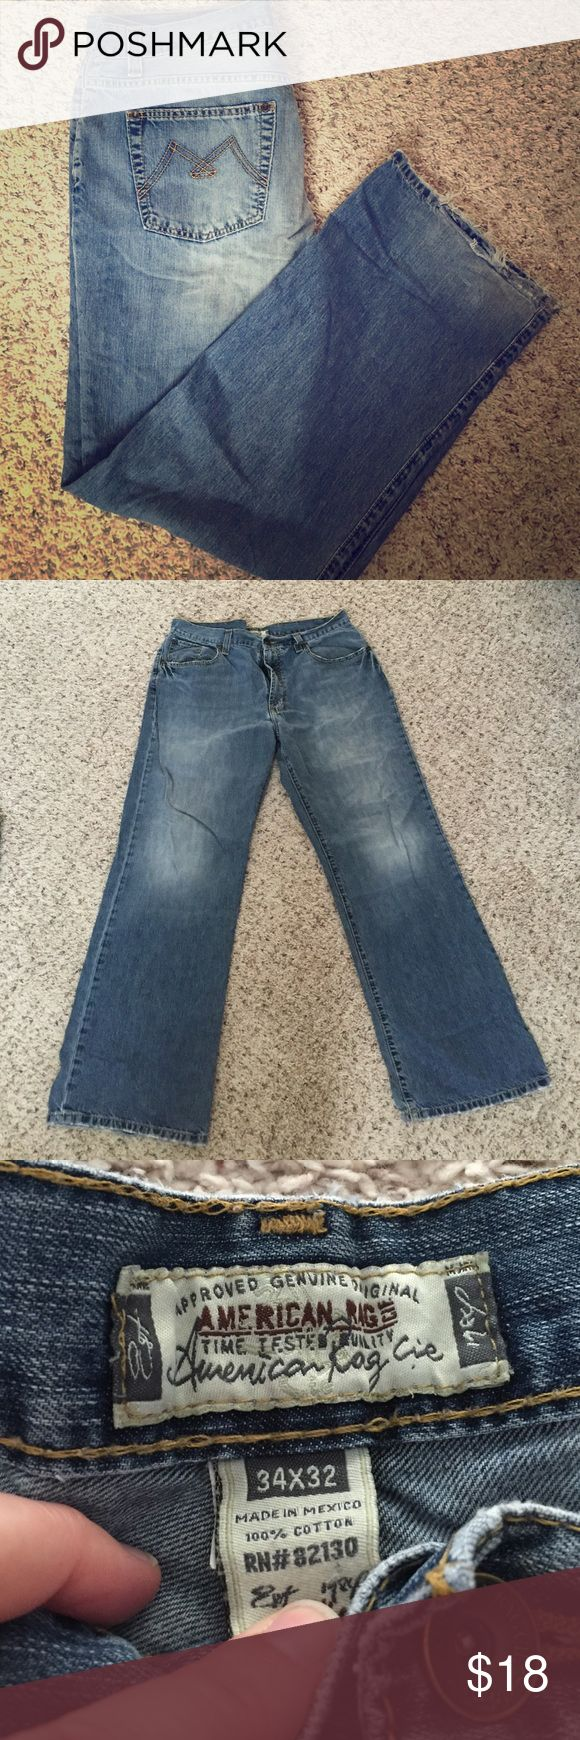 Men's American rag jeans Men's American rag jeans. Lighter wash and wide leg opening. There is wear on the bottom hem. Size 34x32 from a smoke free home American Rag Jeans Straight